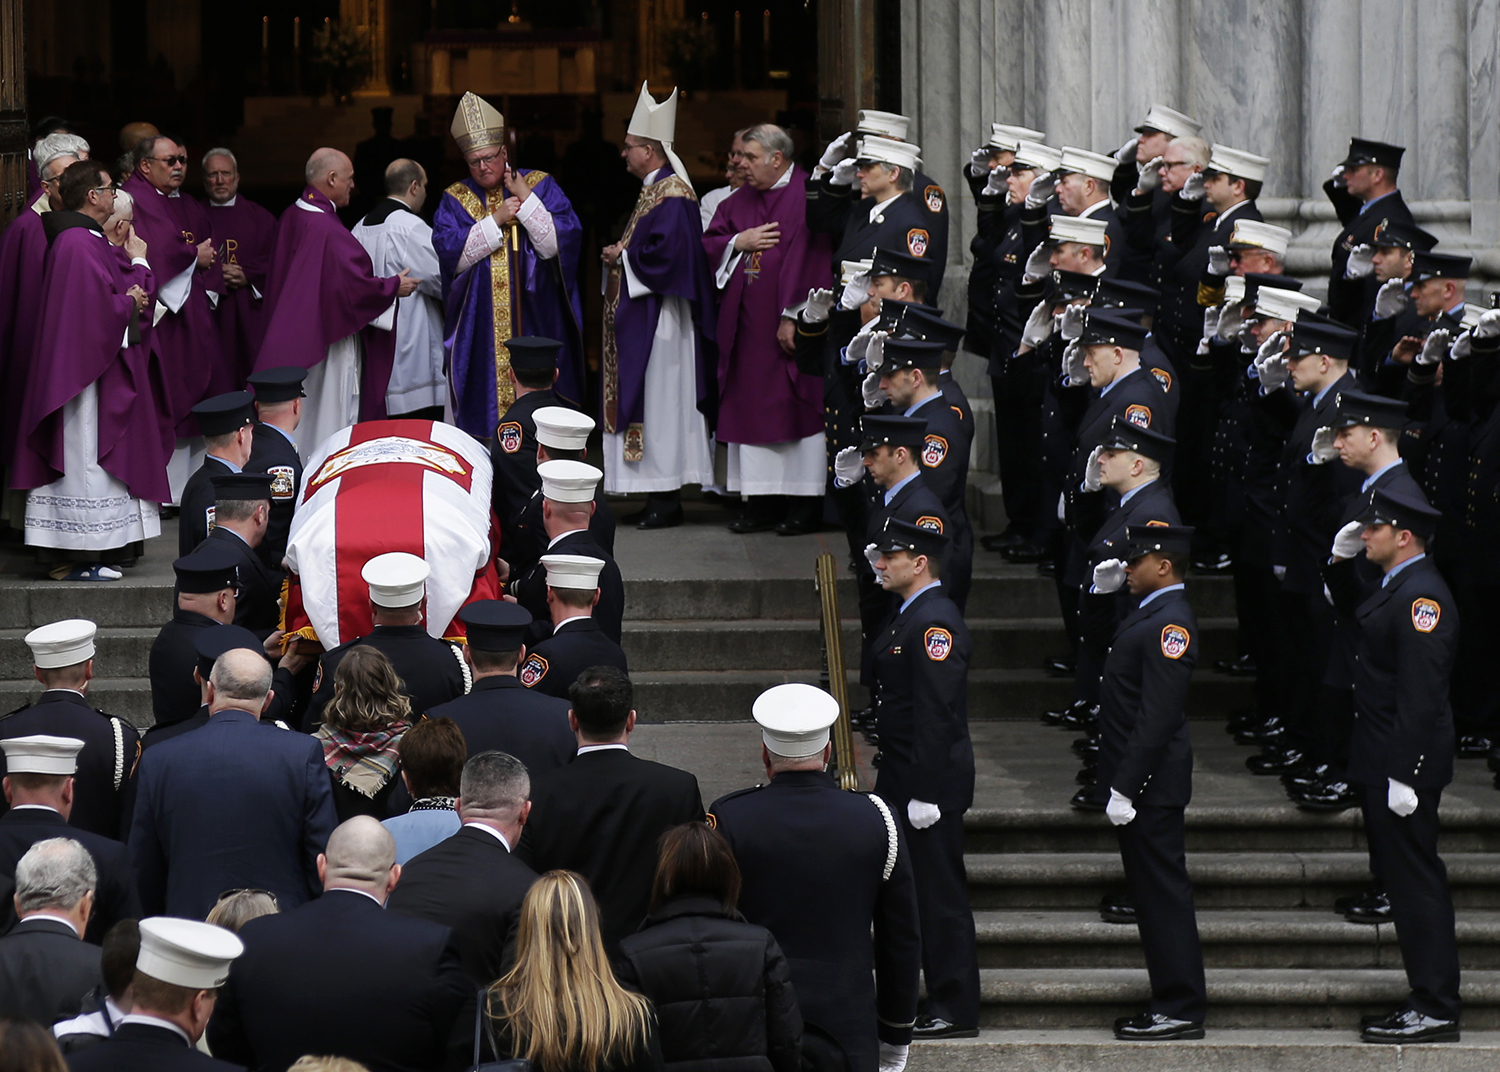 <div class='meta'><div class='origin-logo' data-origin='AP'></div><span class='caption-text' data-credit='Seth Wenig'>A casket containing the body of firefighter Michael Davidson is brought into St. Patrick's Cathedral.</span></div>